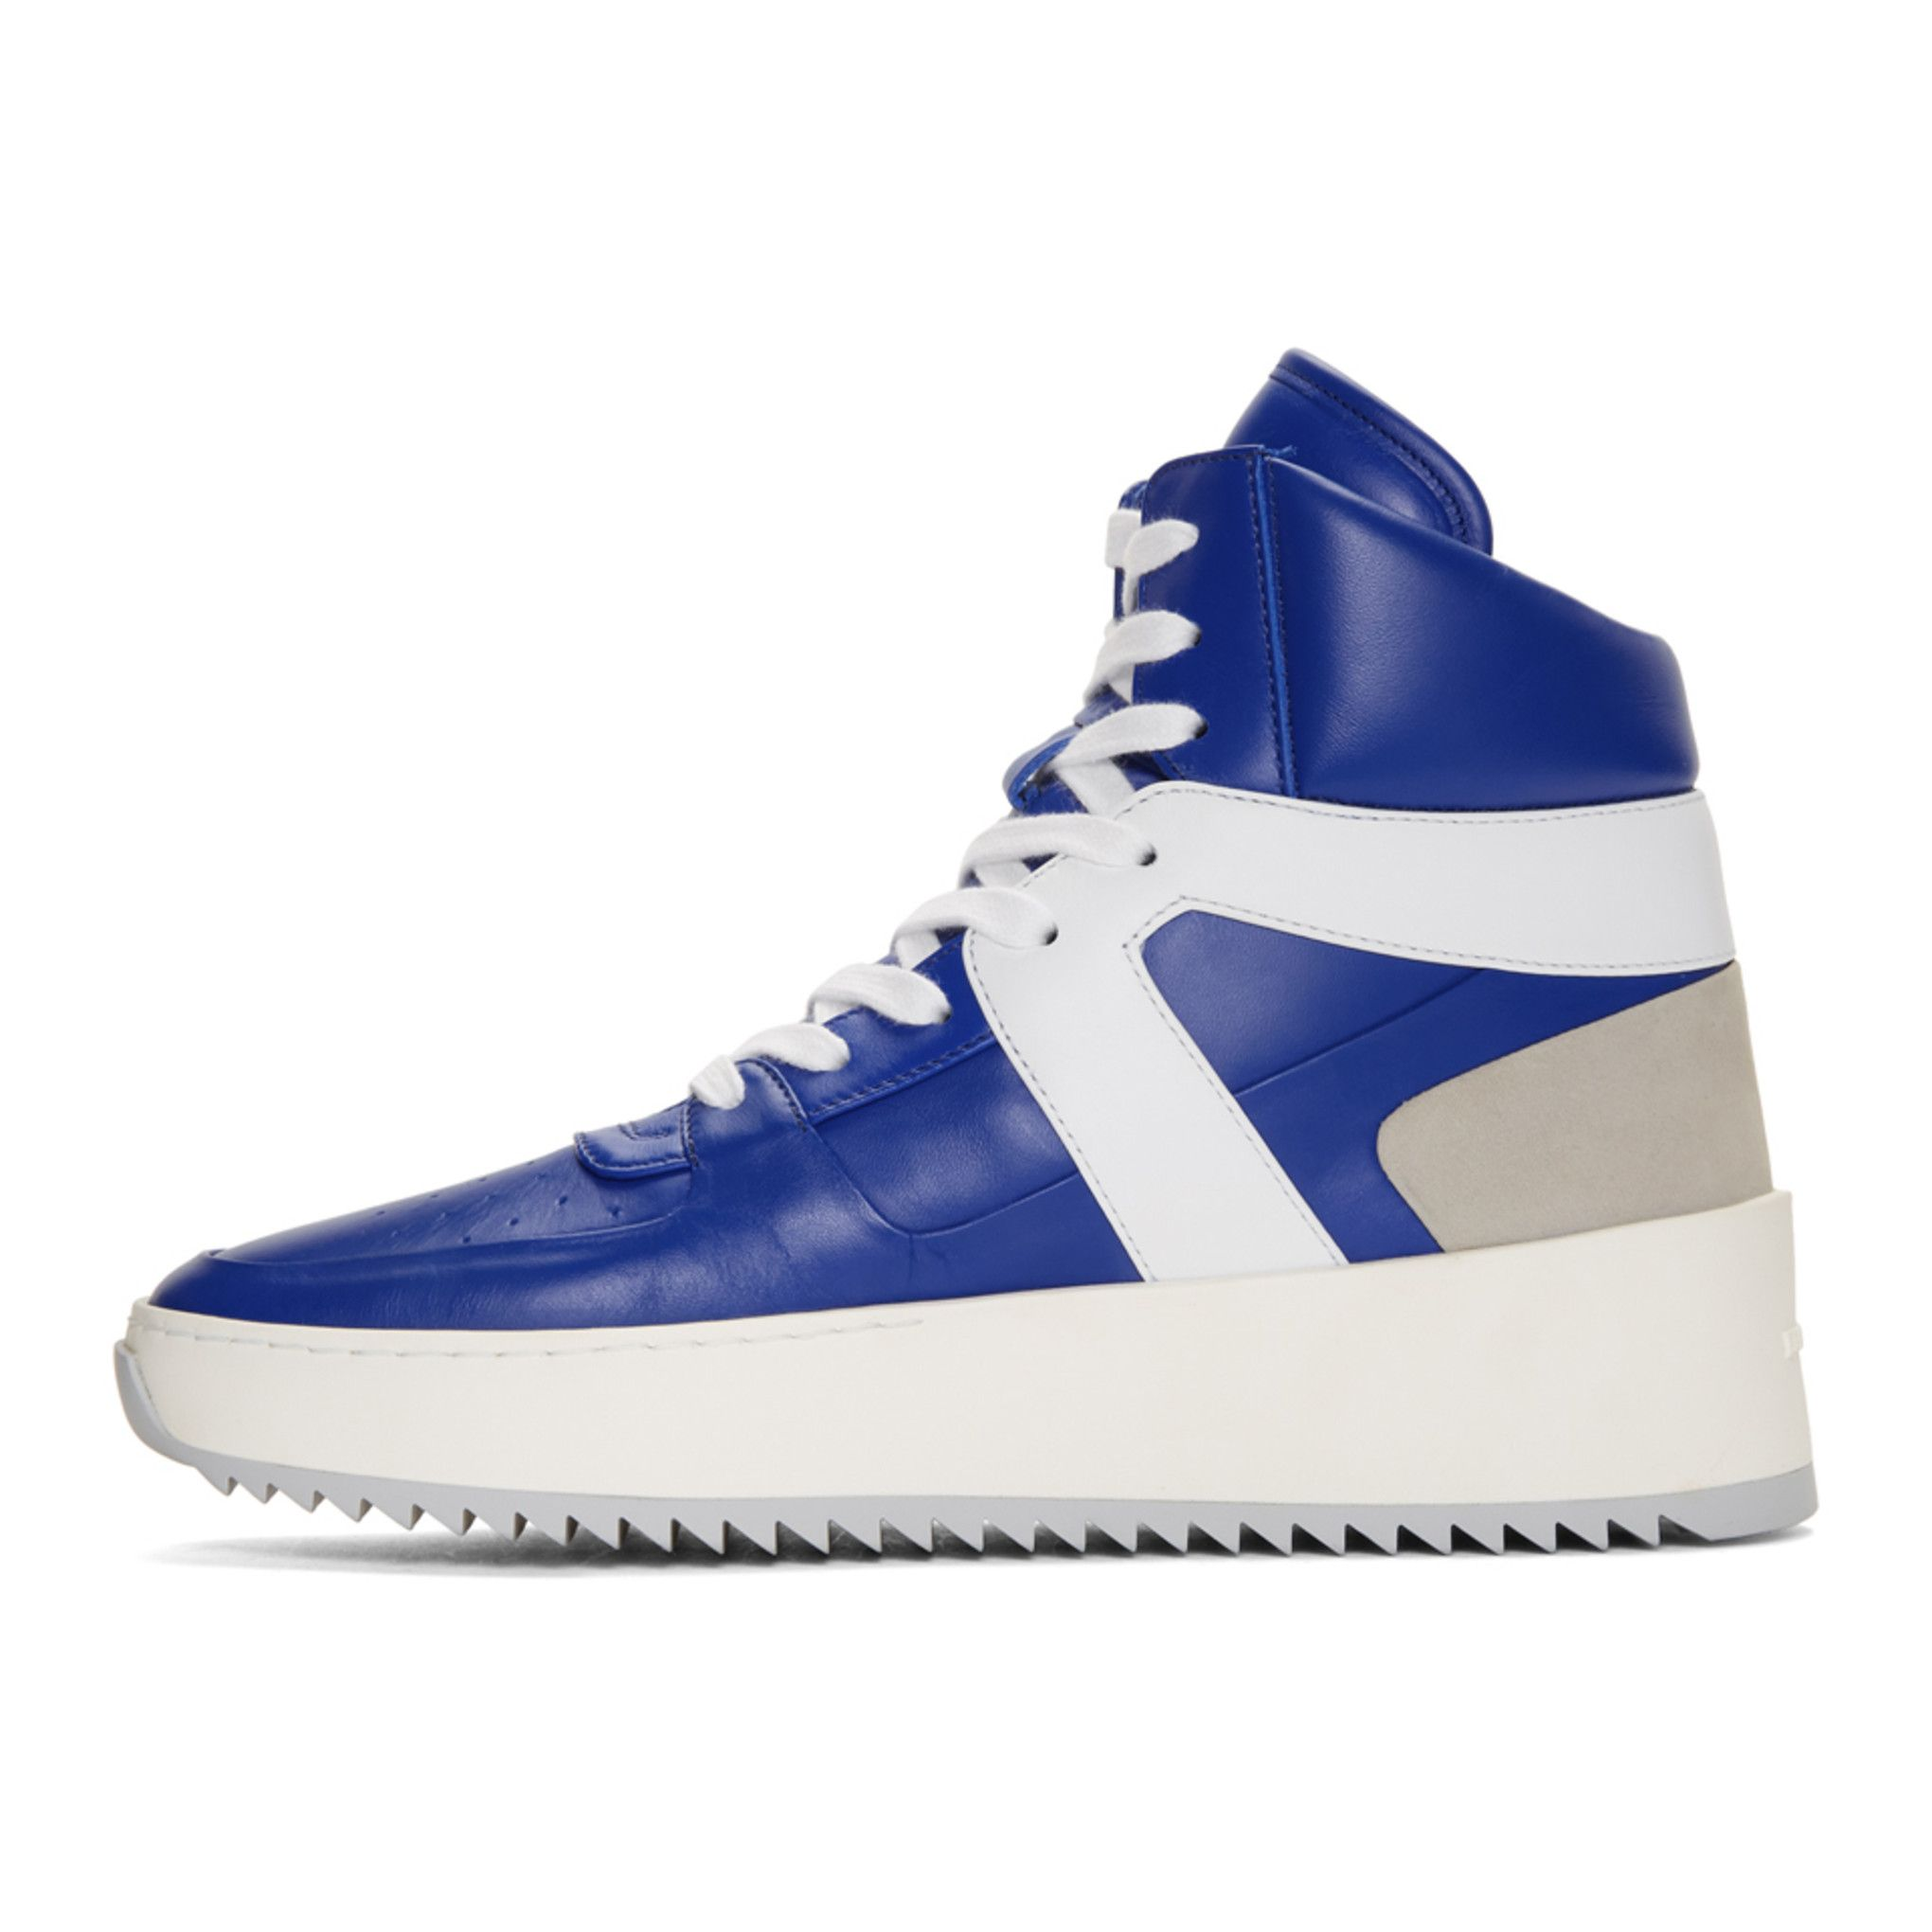 SSENSE Exclusive Blue and White Basketball High-Top Sneakers Fear of God oxPFa